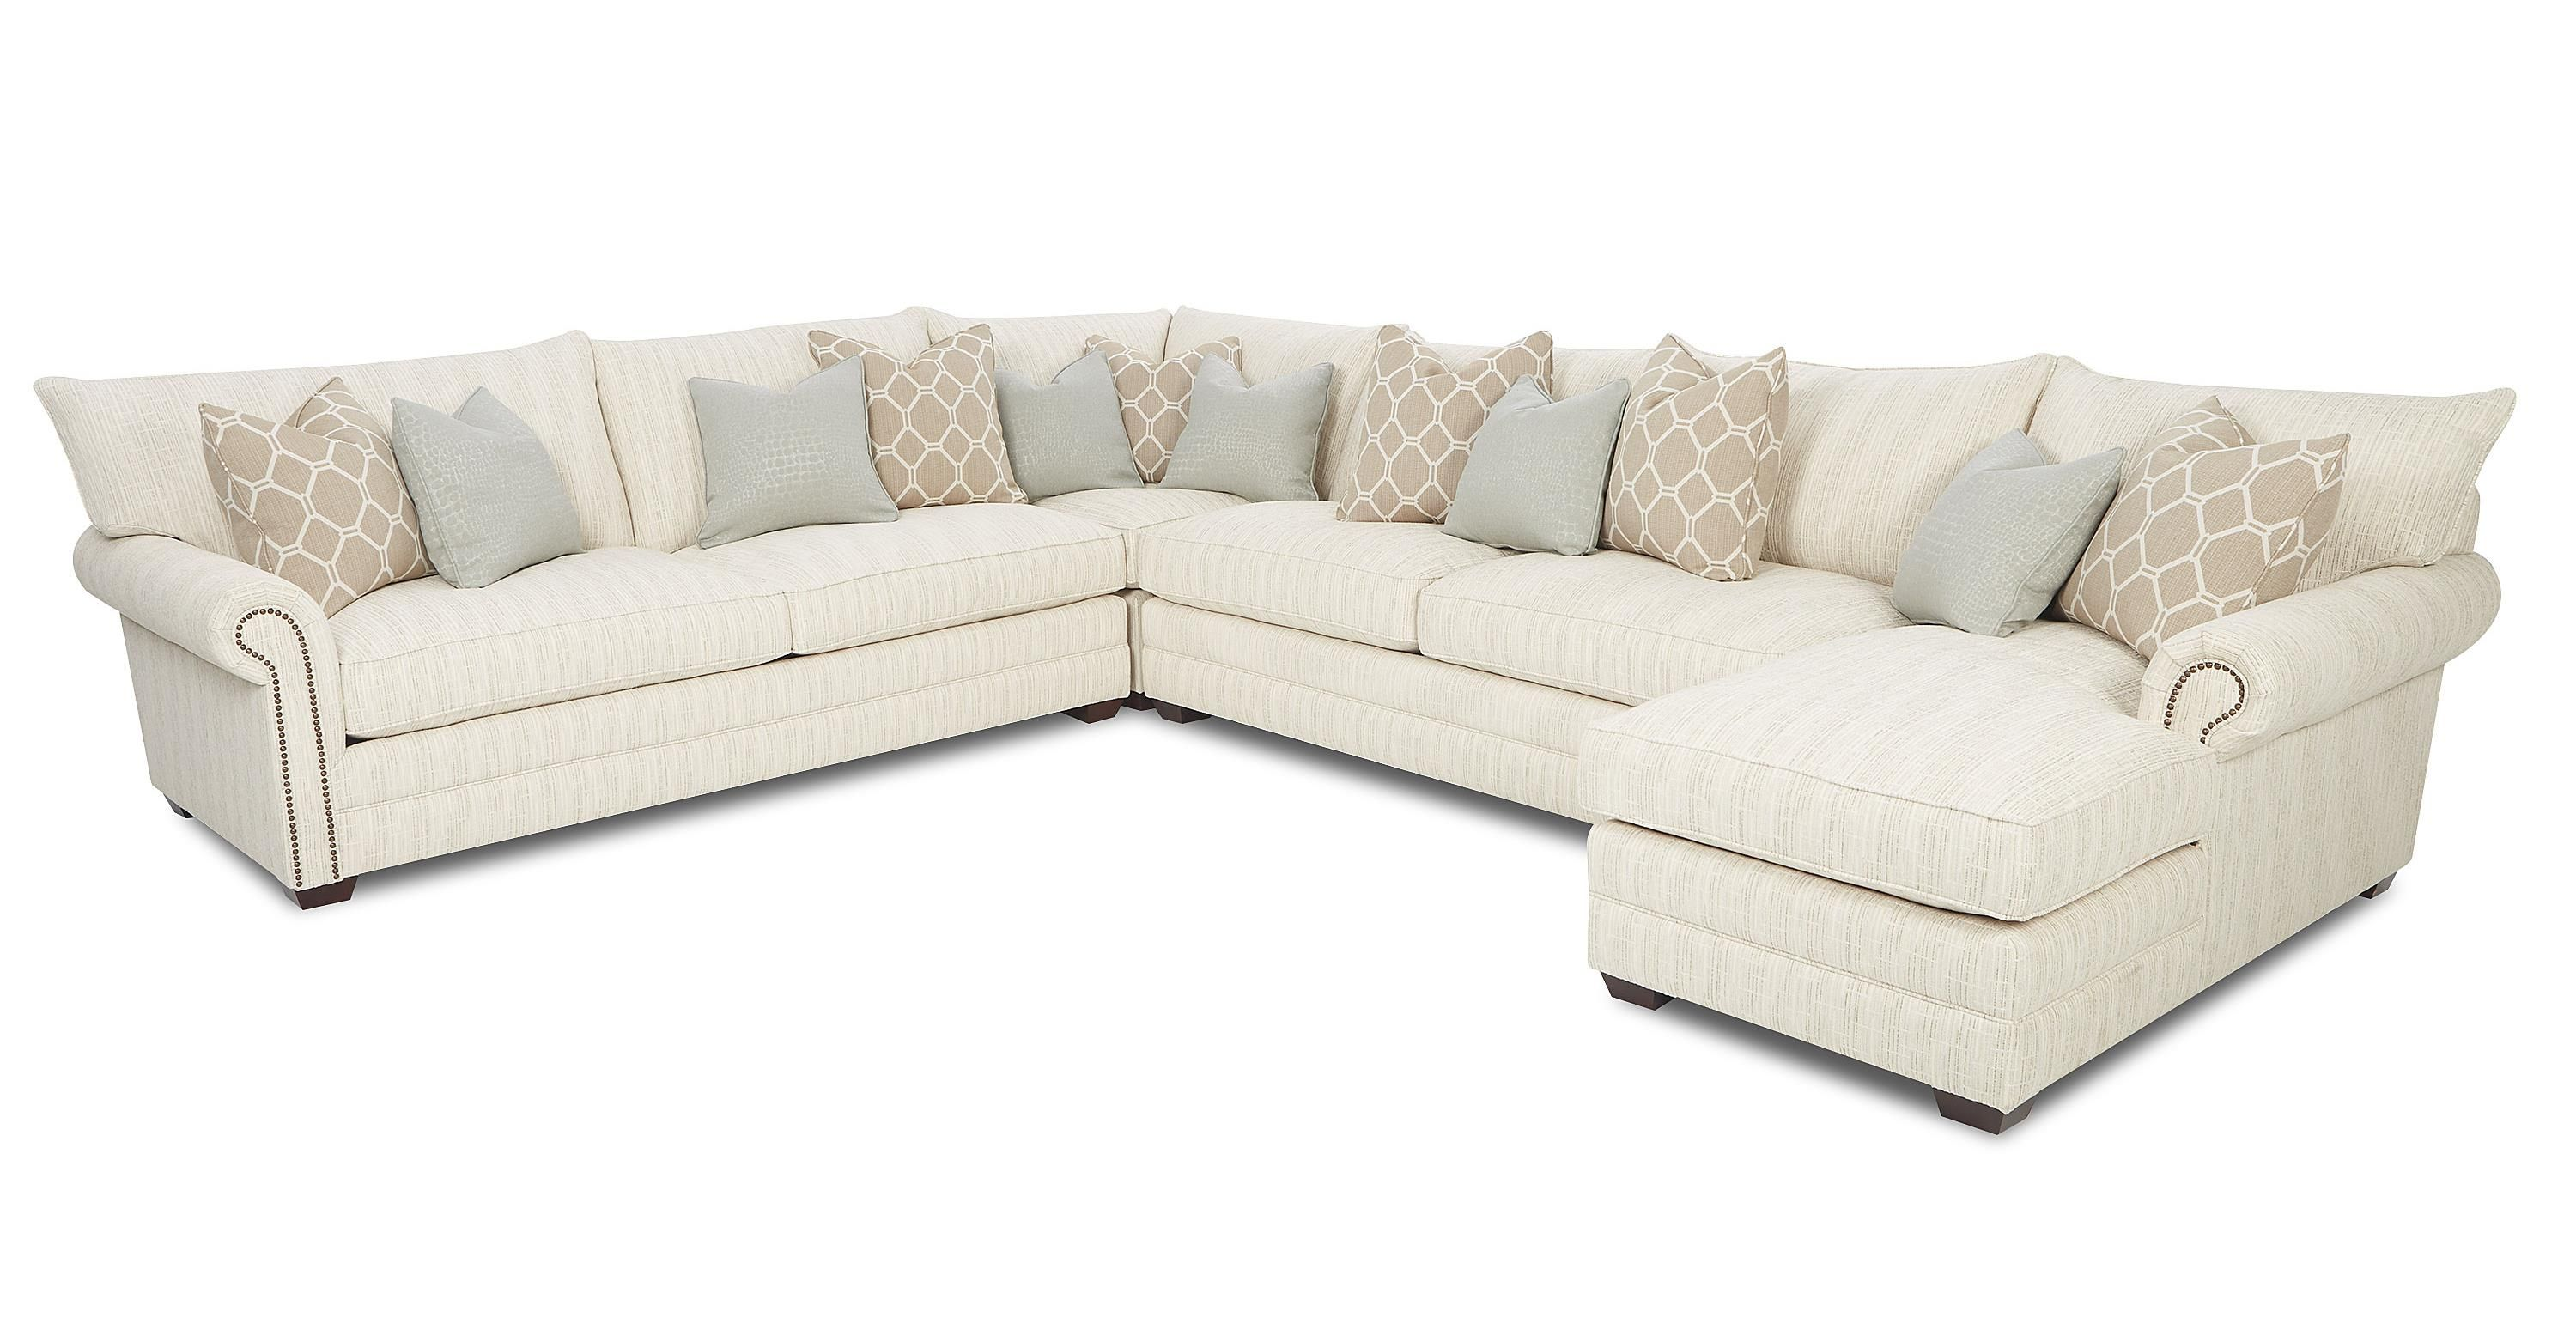 Jenny Transitional 2 Piece Sectional Sofa by Klaussner